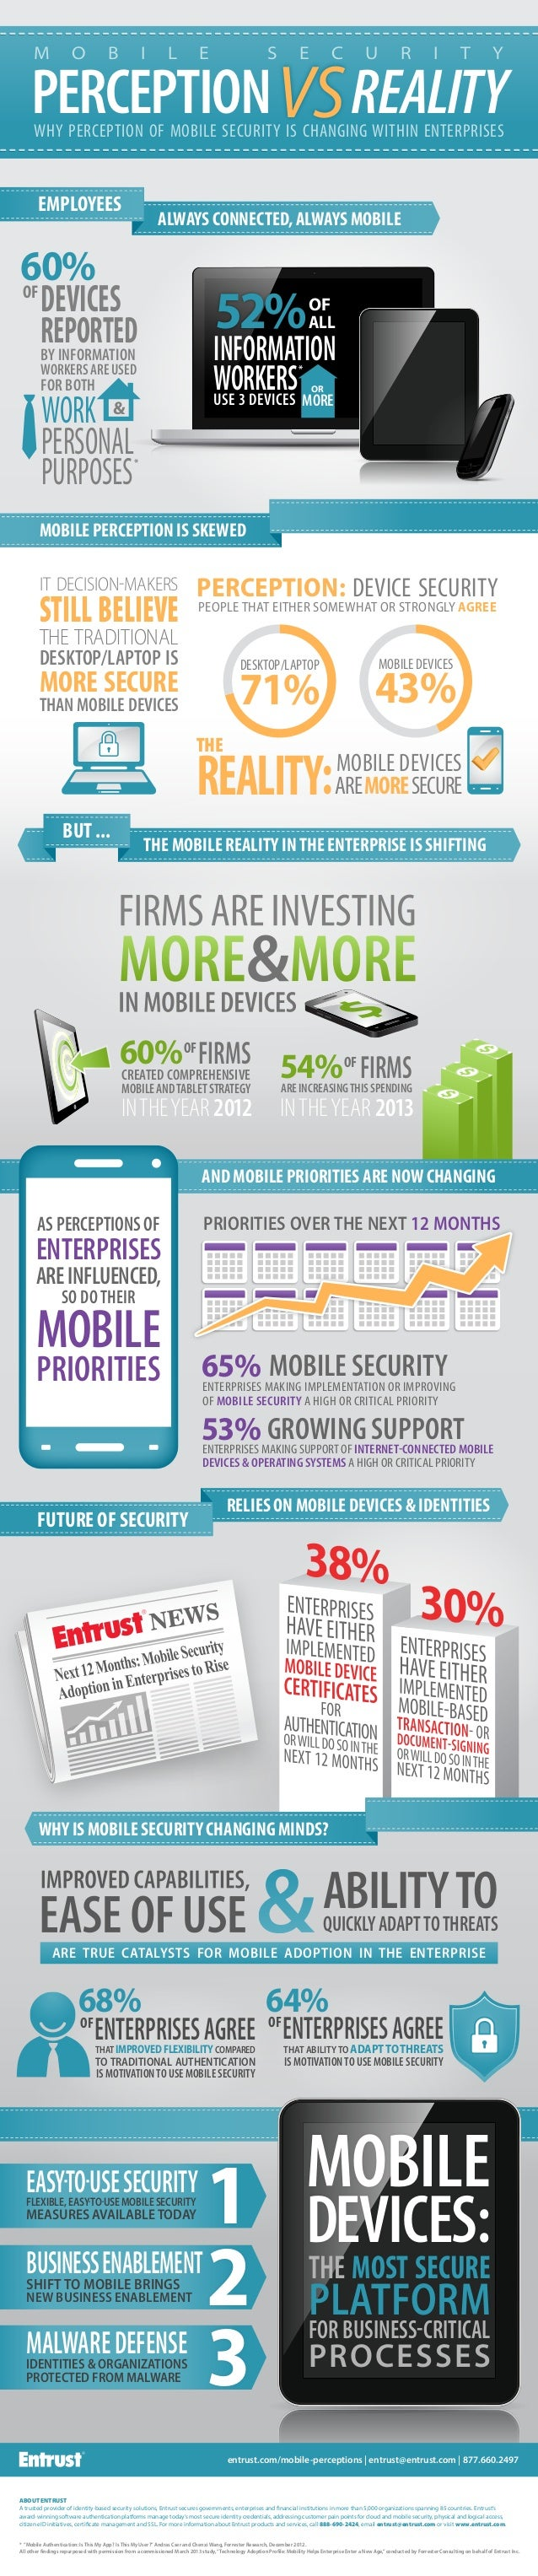 Mobile Security: Perception vs Reality